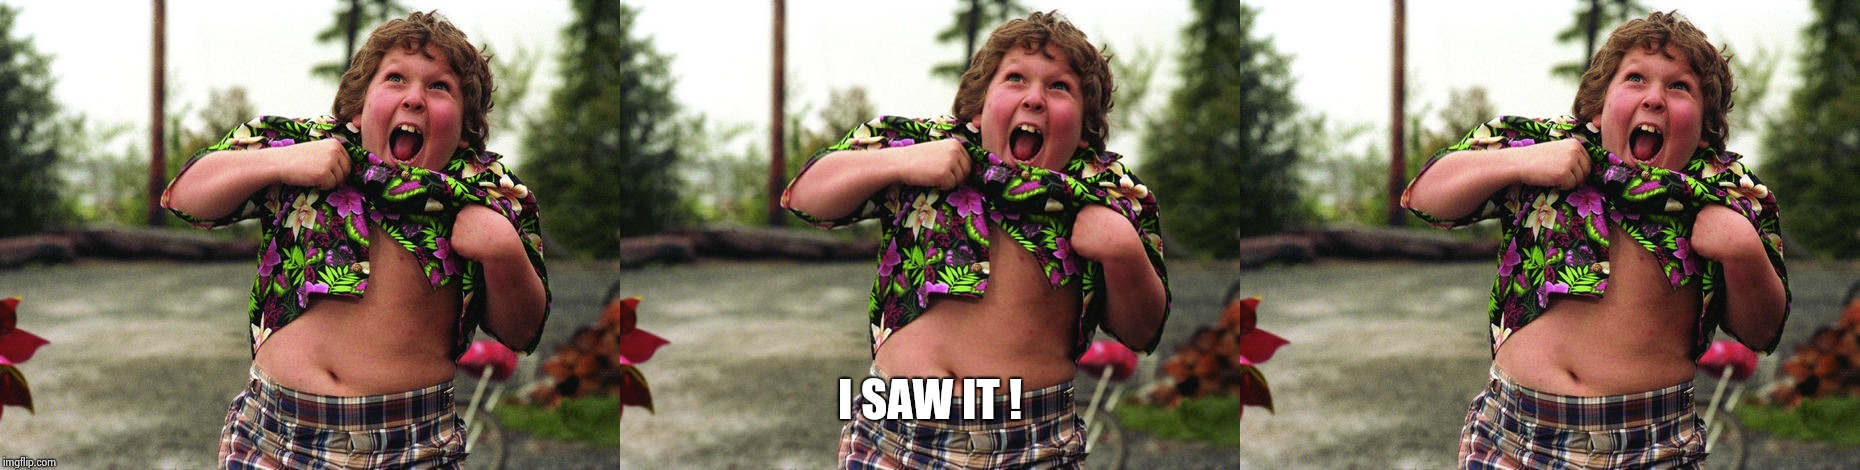 I SAW IT ! | image tagged in truffle shuffle | made w/ Imgflip meme maker